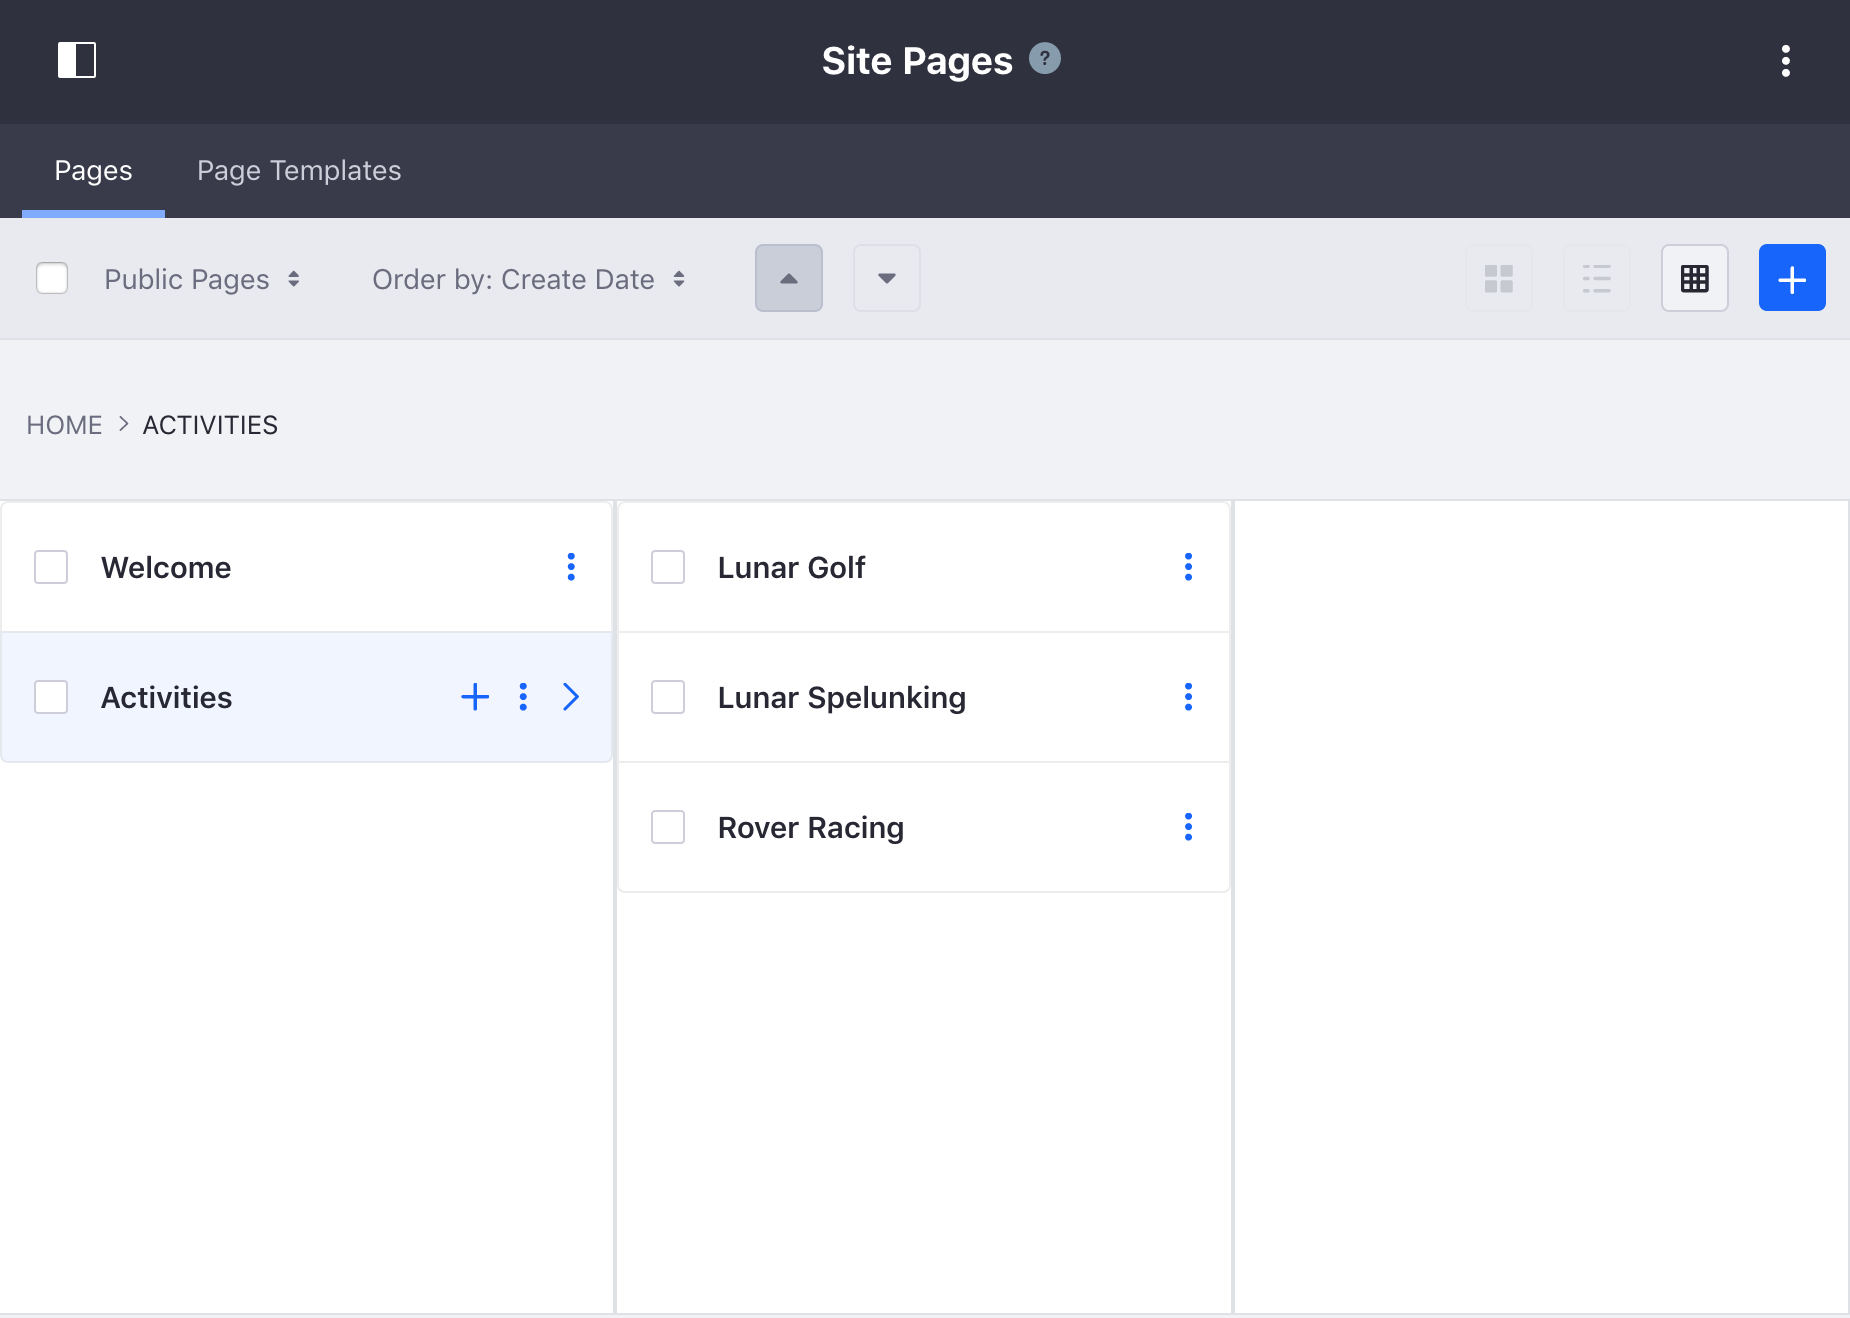 Figure 1: The Sites Pages page allows you to edit your Site pages as a whole.